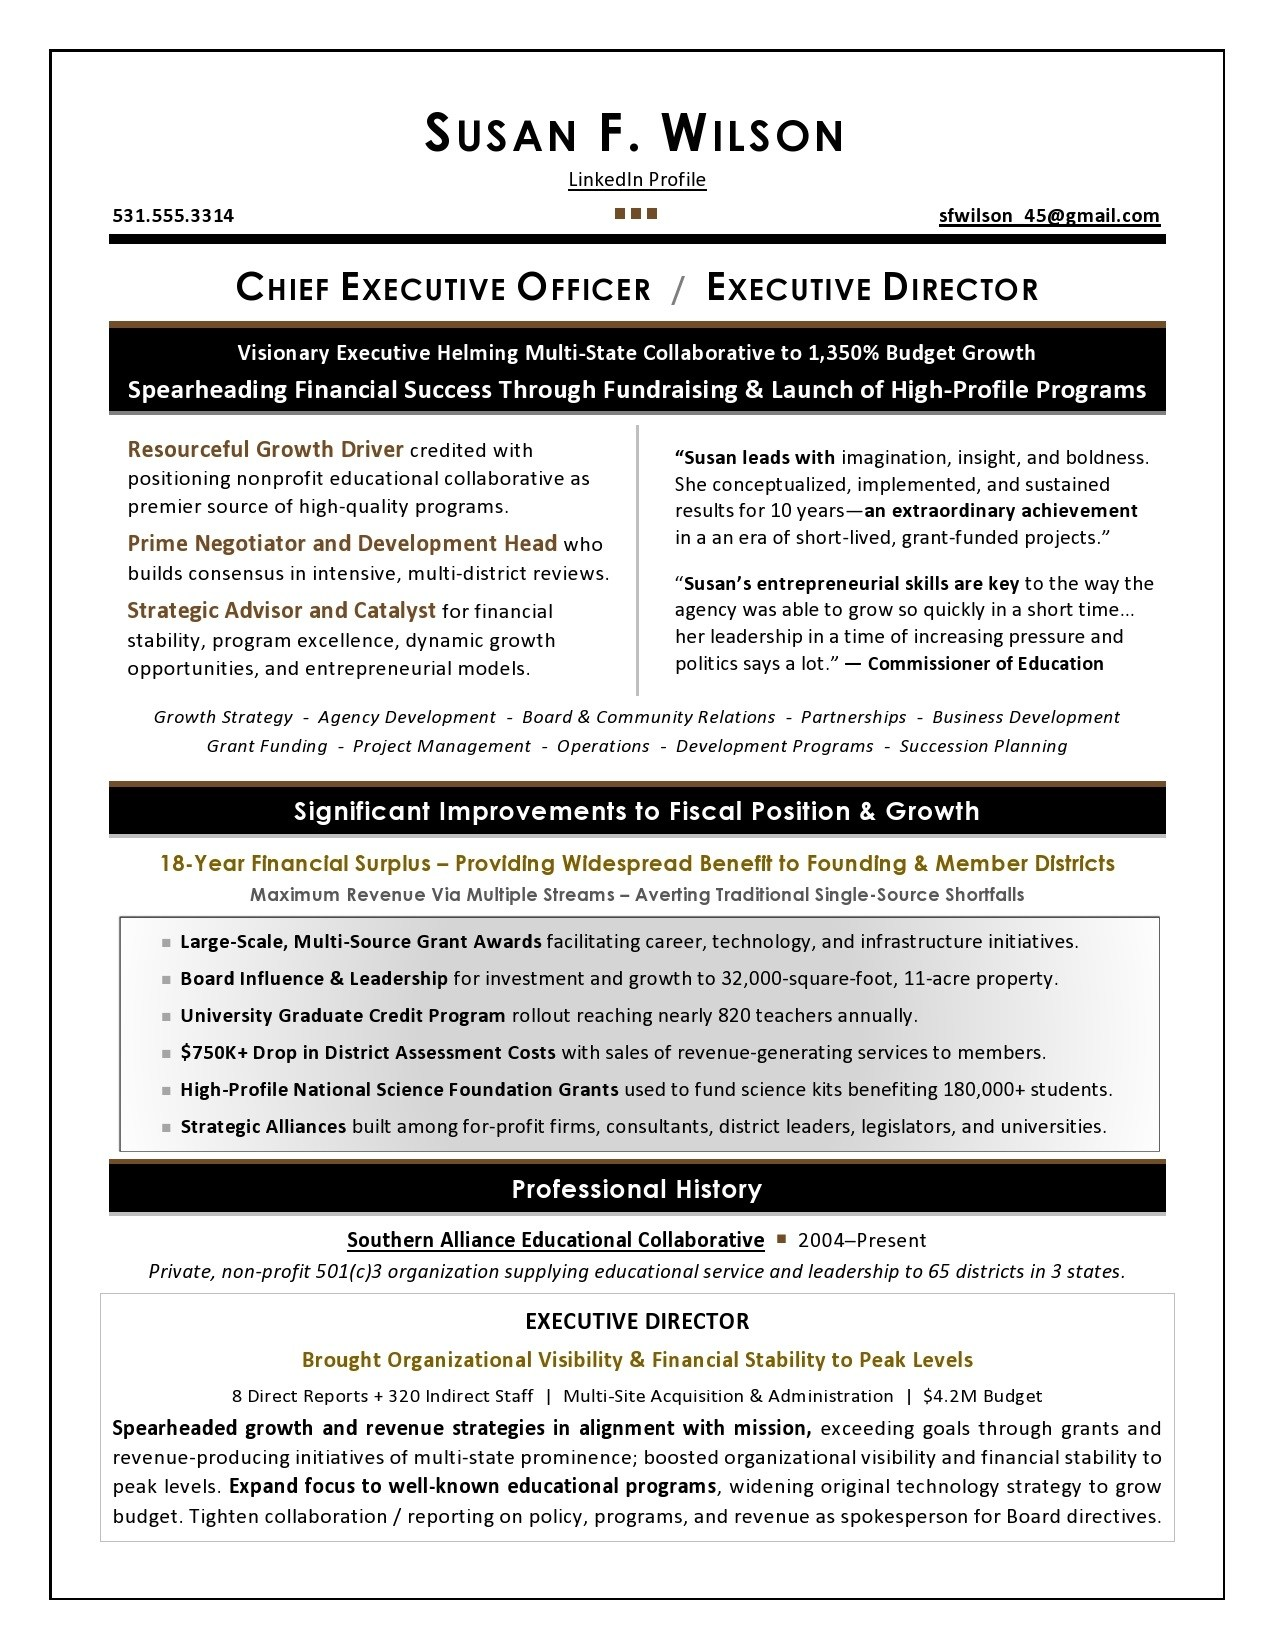 executive resume writing services top writers expert writer nonprofit sample laborer best Resume Executive Resume Writer